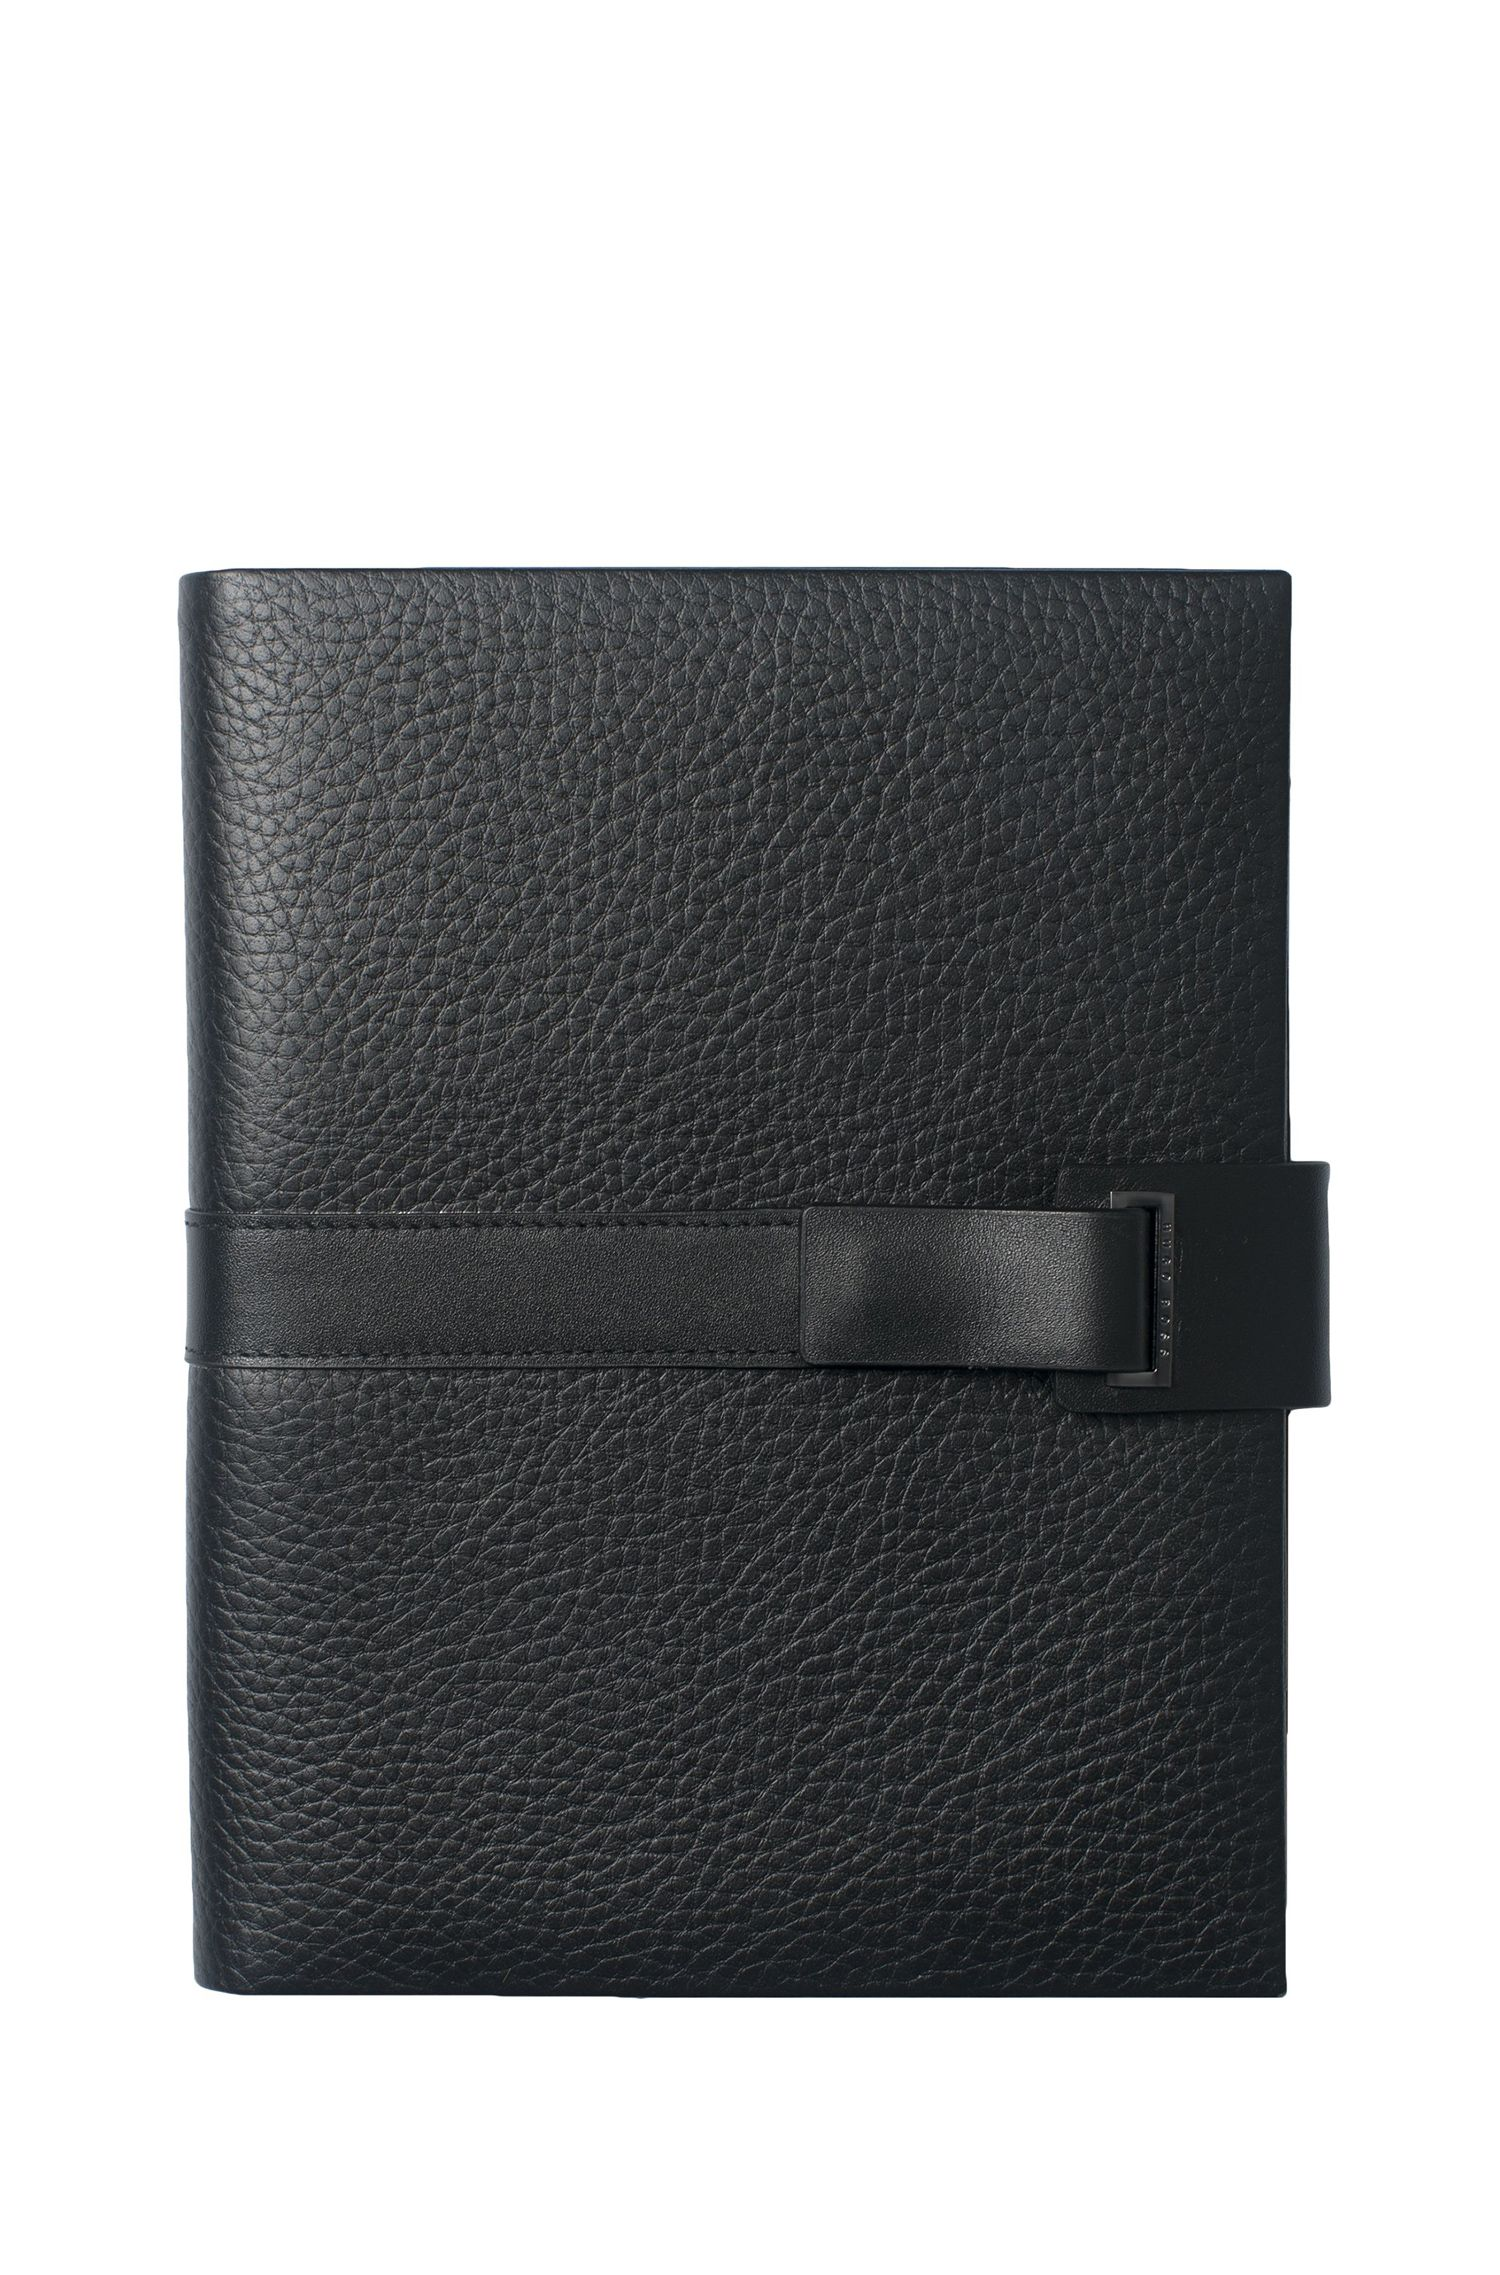 A5 grained leather folder with magnetic front strap